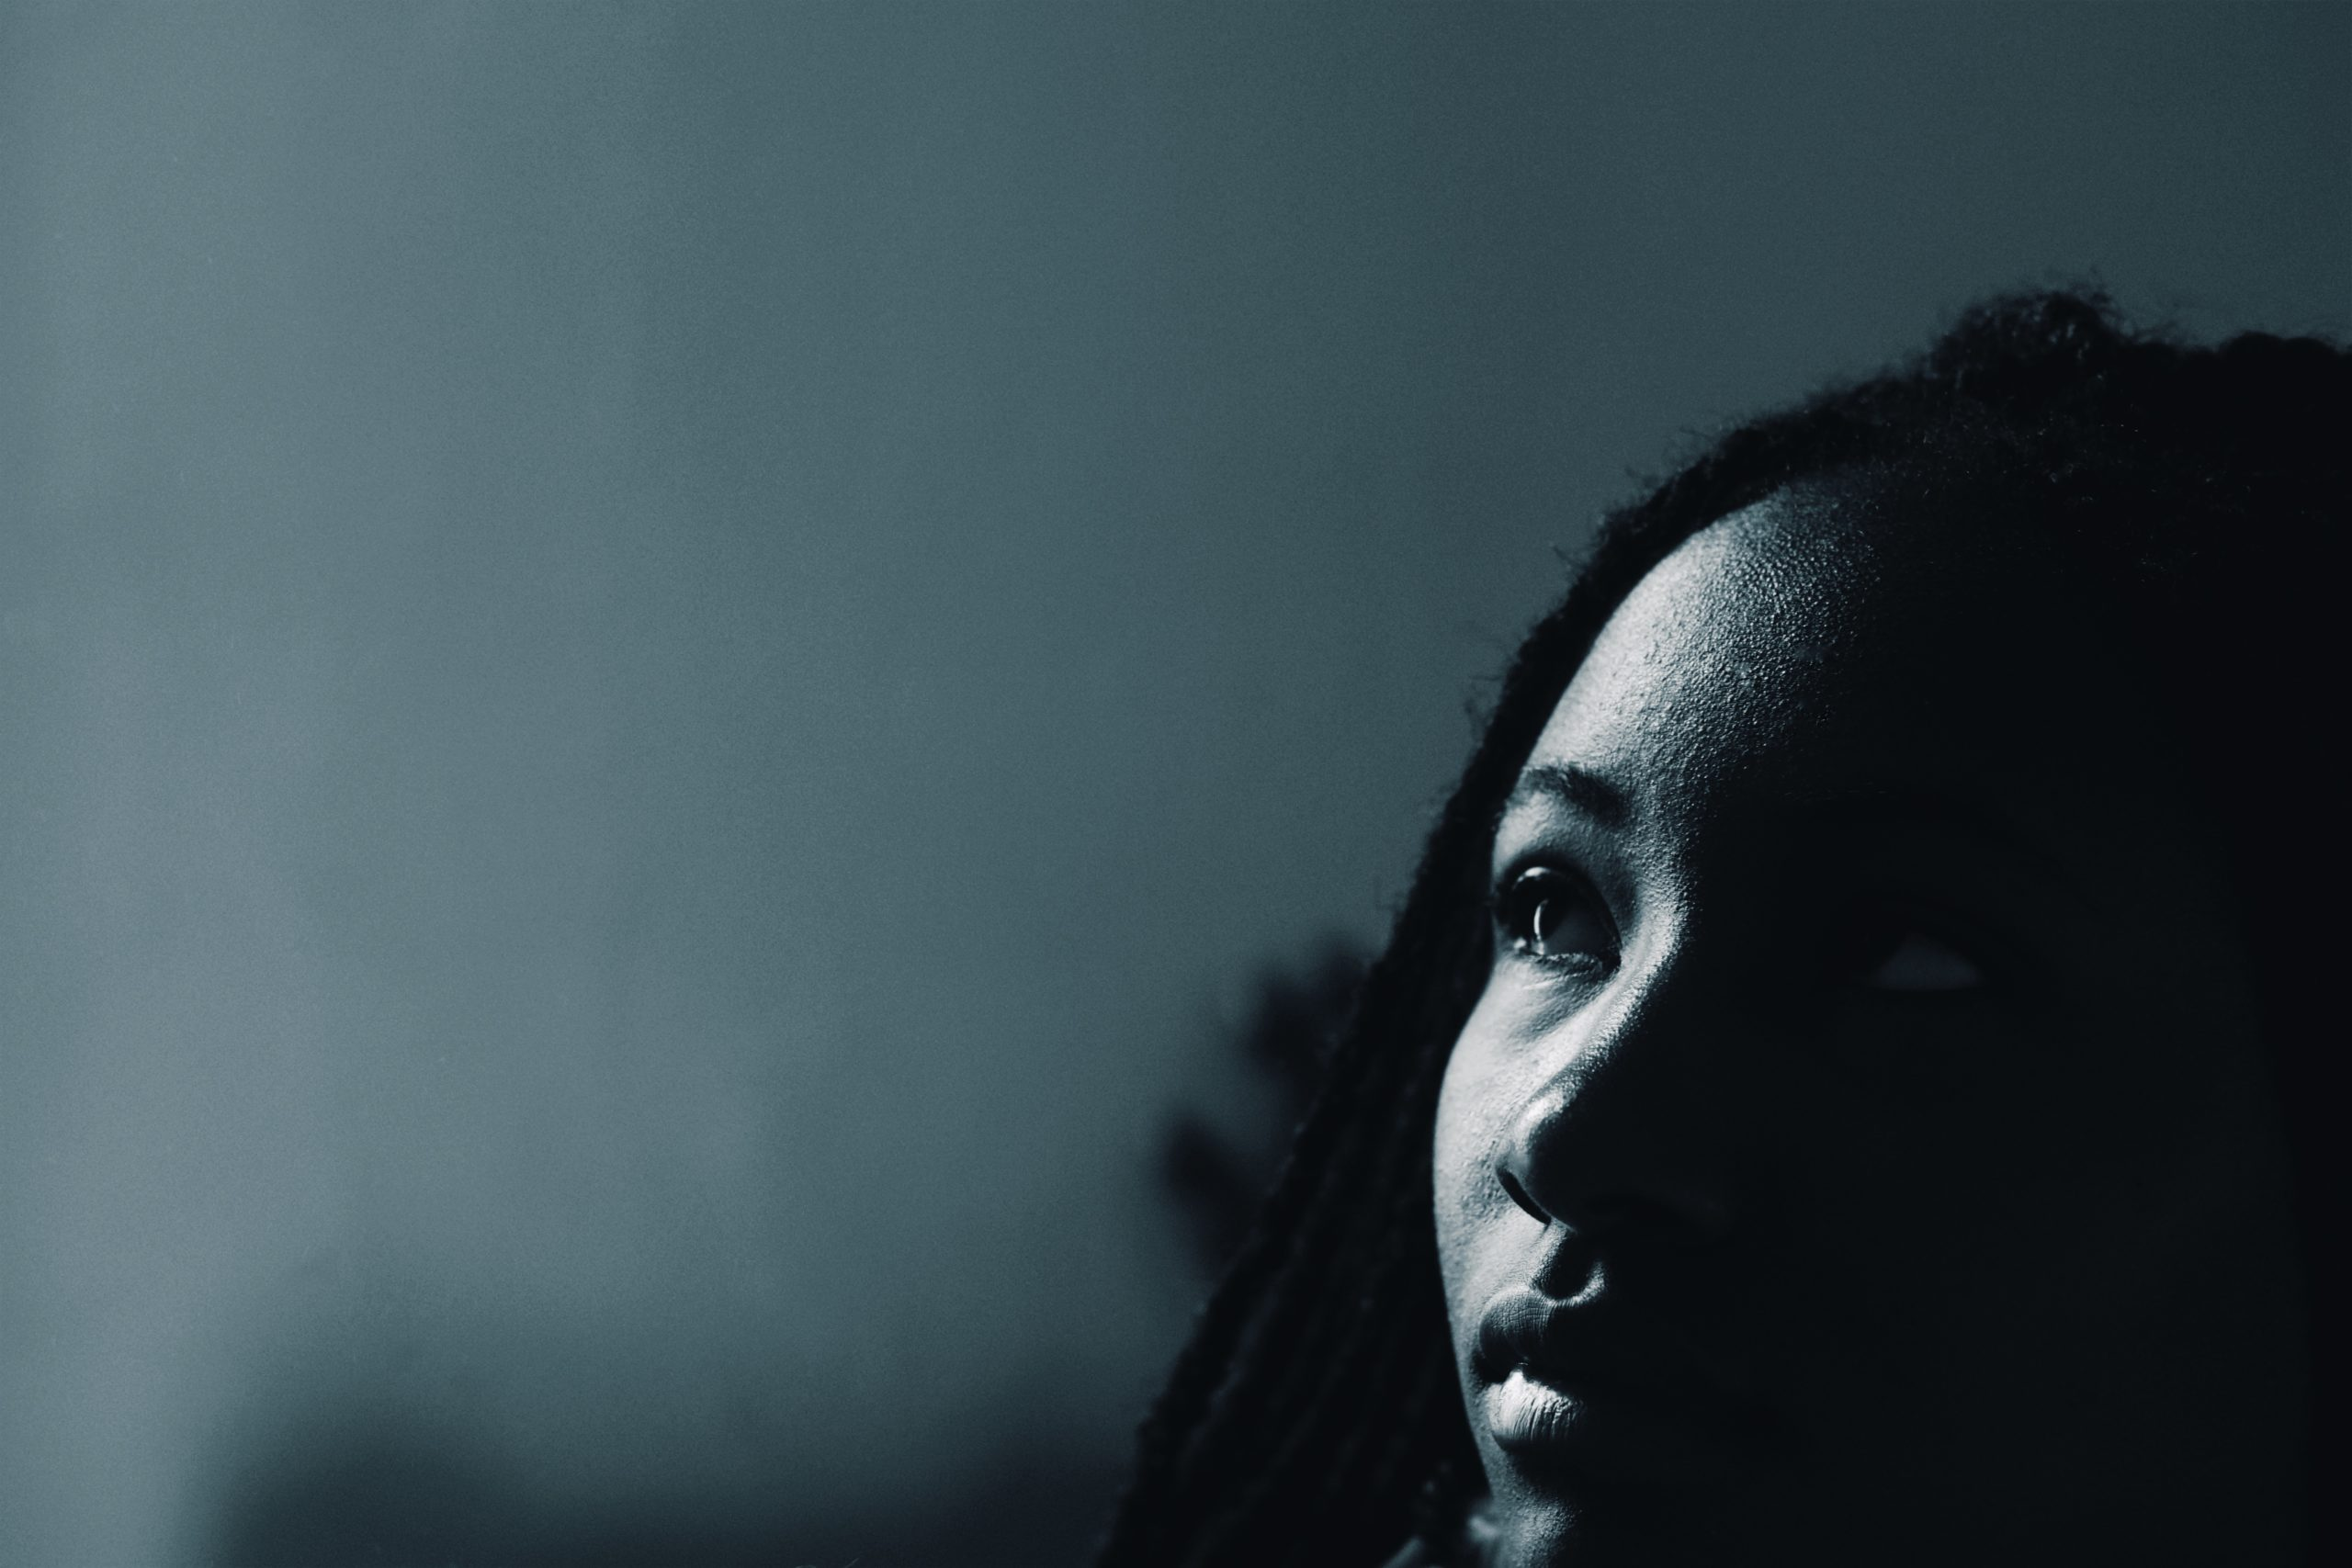 A blueish light shines on the face of a dark-skinned black woman with black locks, so that have of her face reflects the light, and half is cast in shadow. She looks out towards an empty space, looking serious and thoughtful.